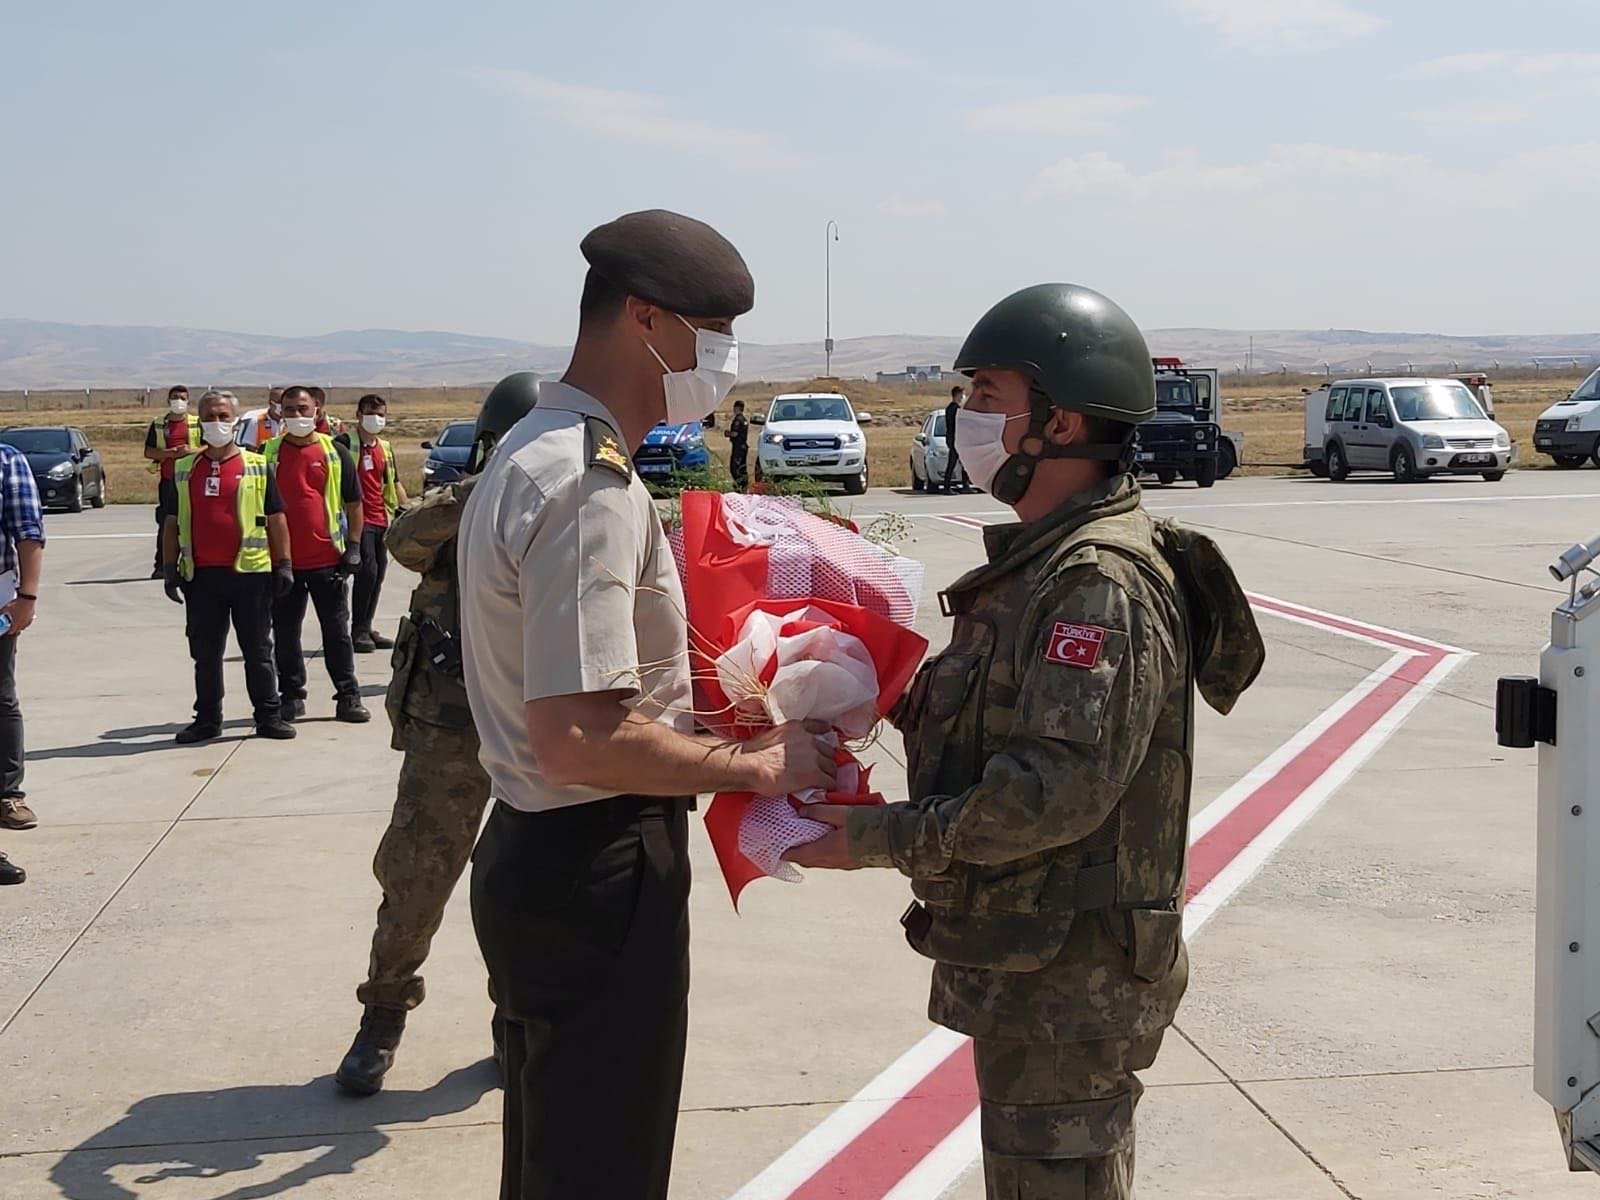 Turkish soldiers arriving from Afghanistan welcomed in Esenboga airport in Ankara in this photo released by the Defense Ministry. (Turkey's Defense Ministry via Twitter)